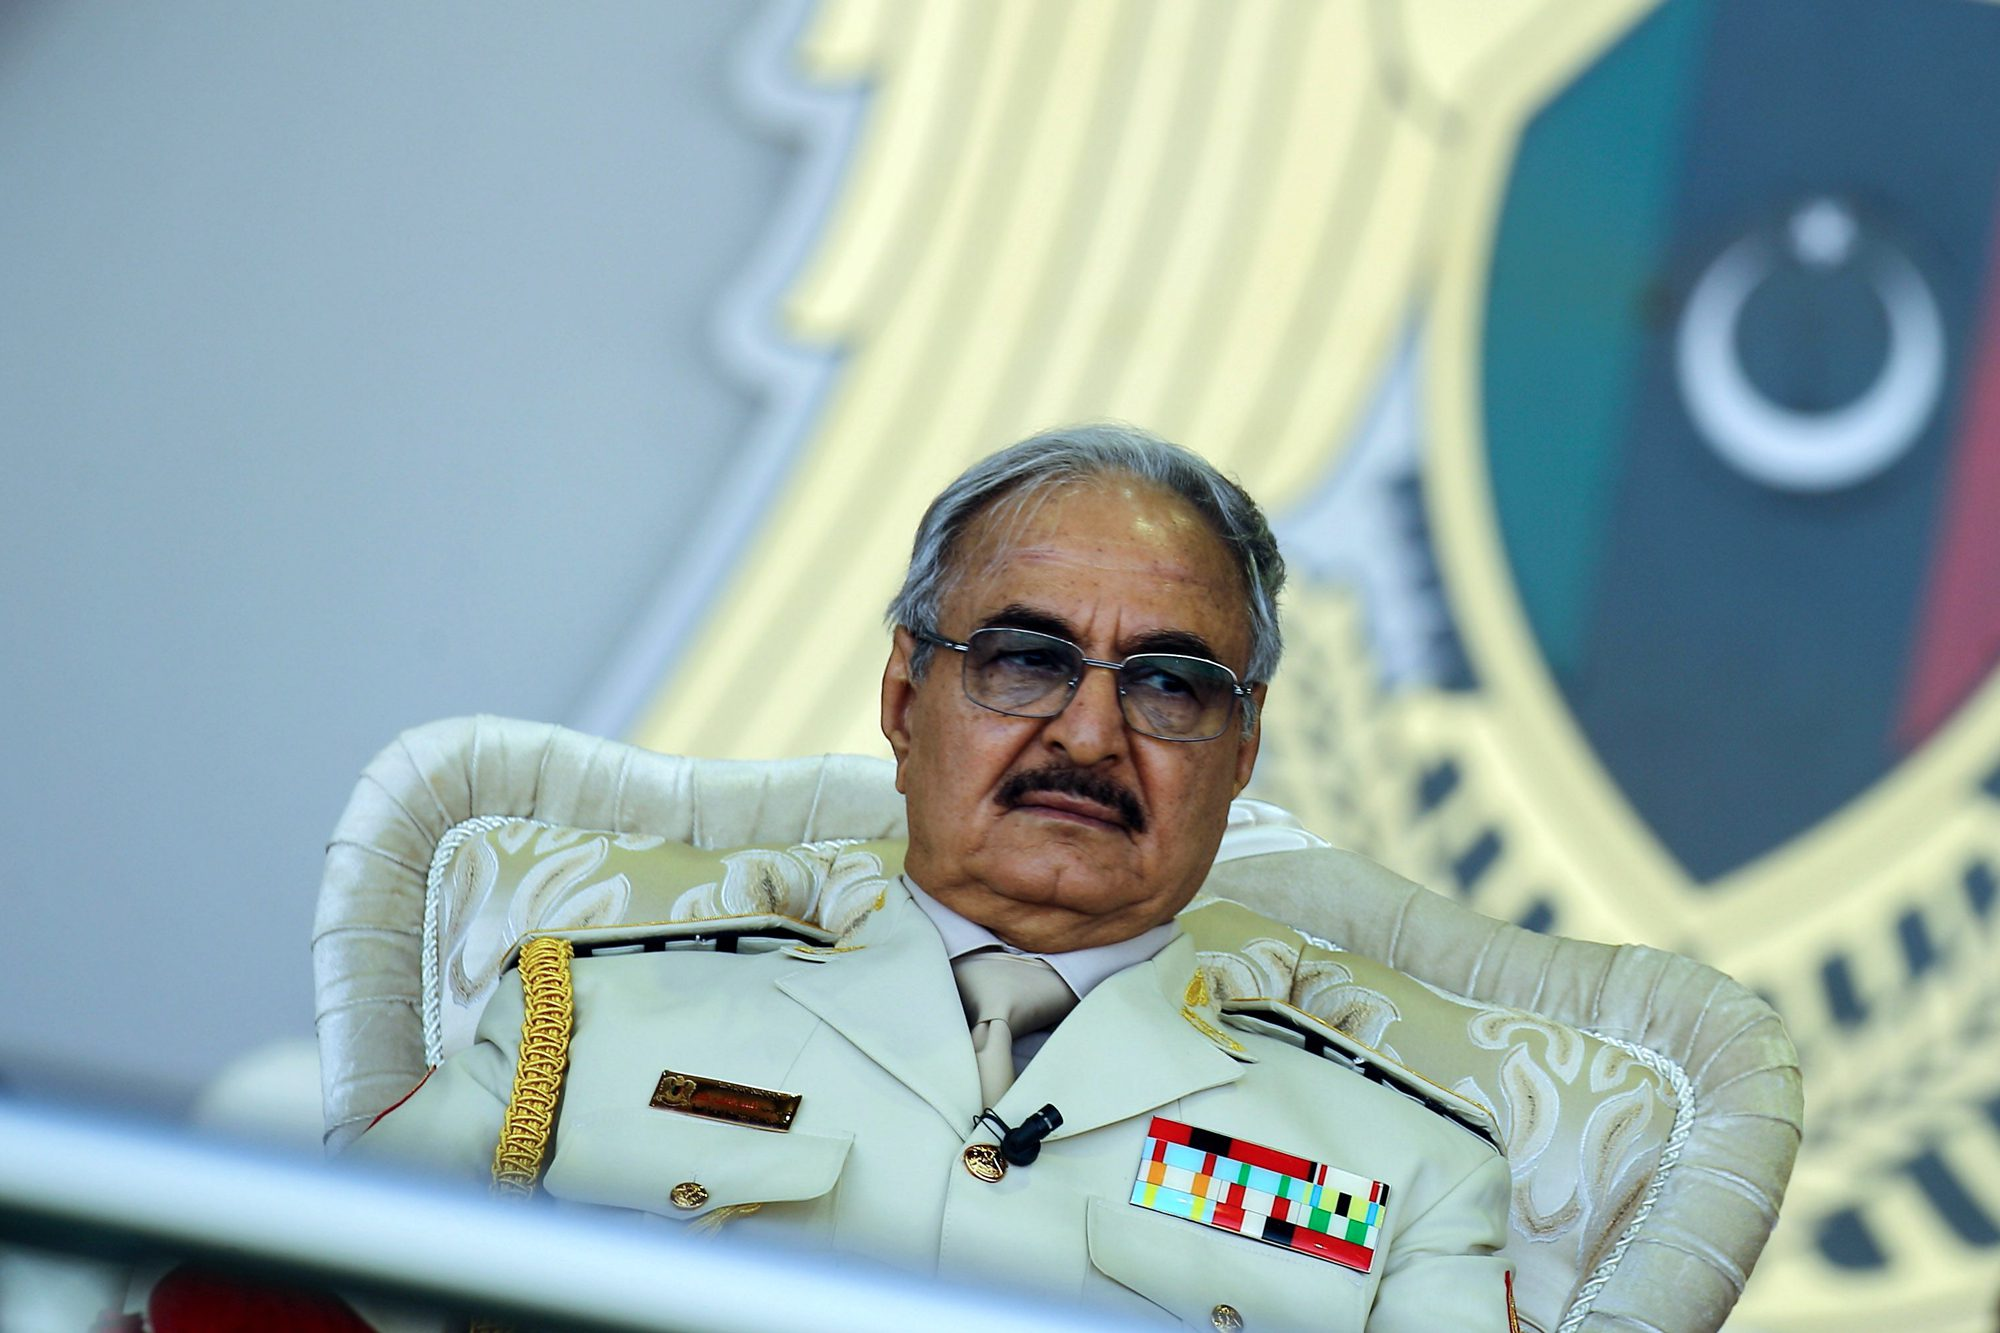 Libyan Strongman Khalifa Haftar attends a military parade in the eastern city of Benghazi on May 7, 2018.